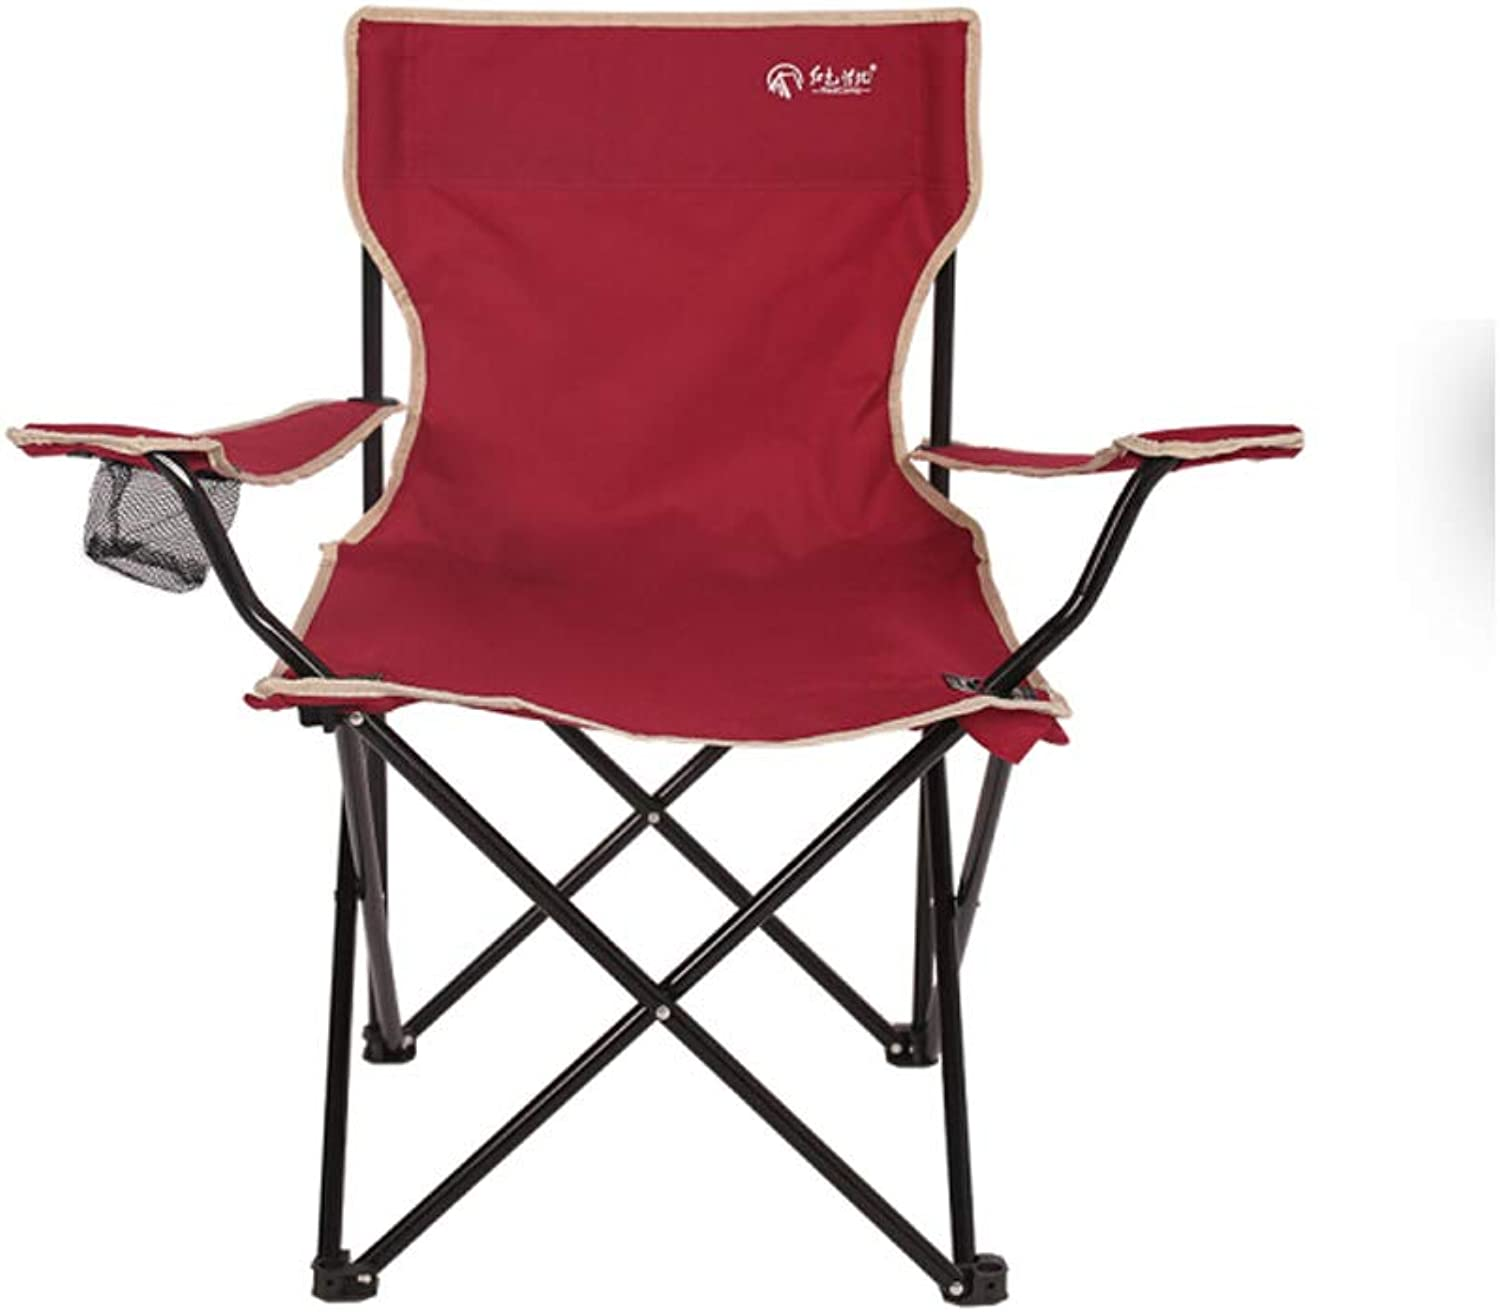 Camping Chair, Portable Fishing Chair with Cup Holder and Storage Bag, Lightweight Heavy Duty for Festival, Camping, Garden, BBQ, Beach, Backpacking